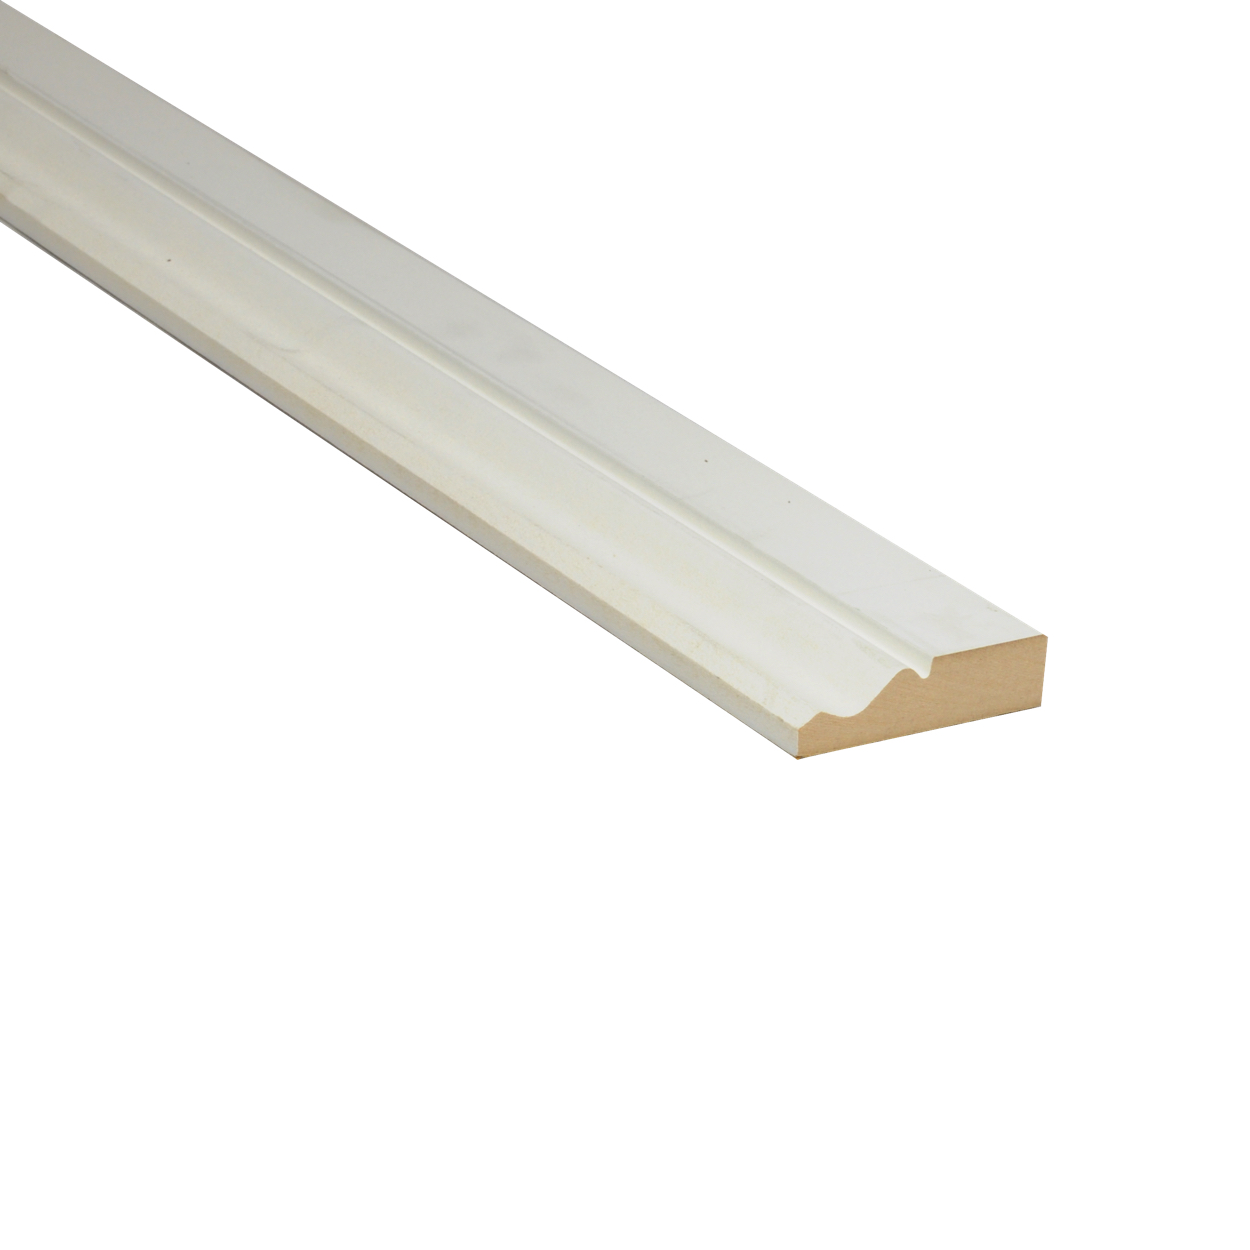 Mdf Primed Ogee Architrave 18mm X 69mm Timberstore